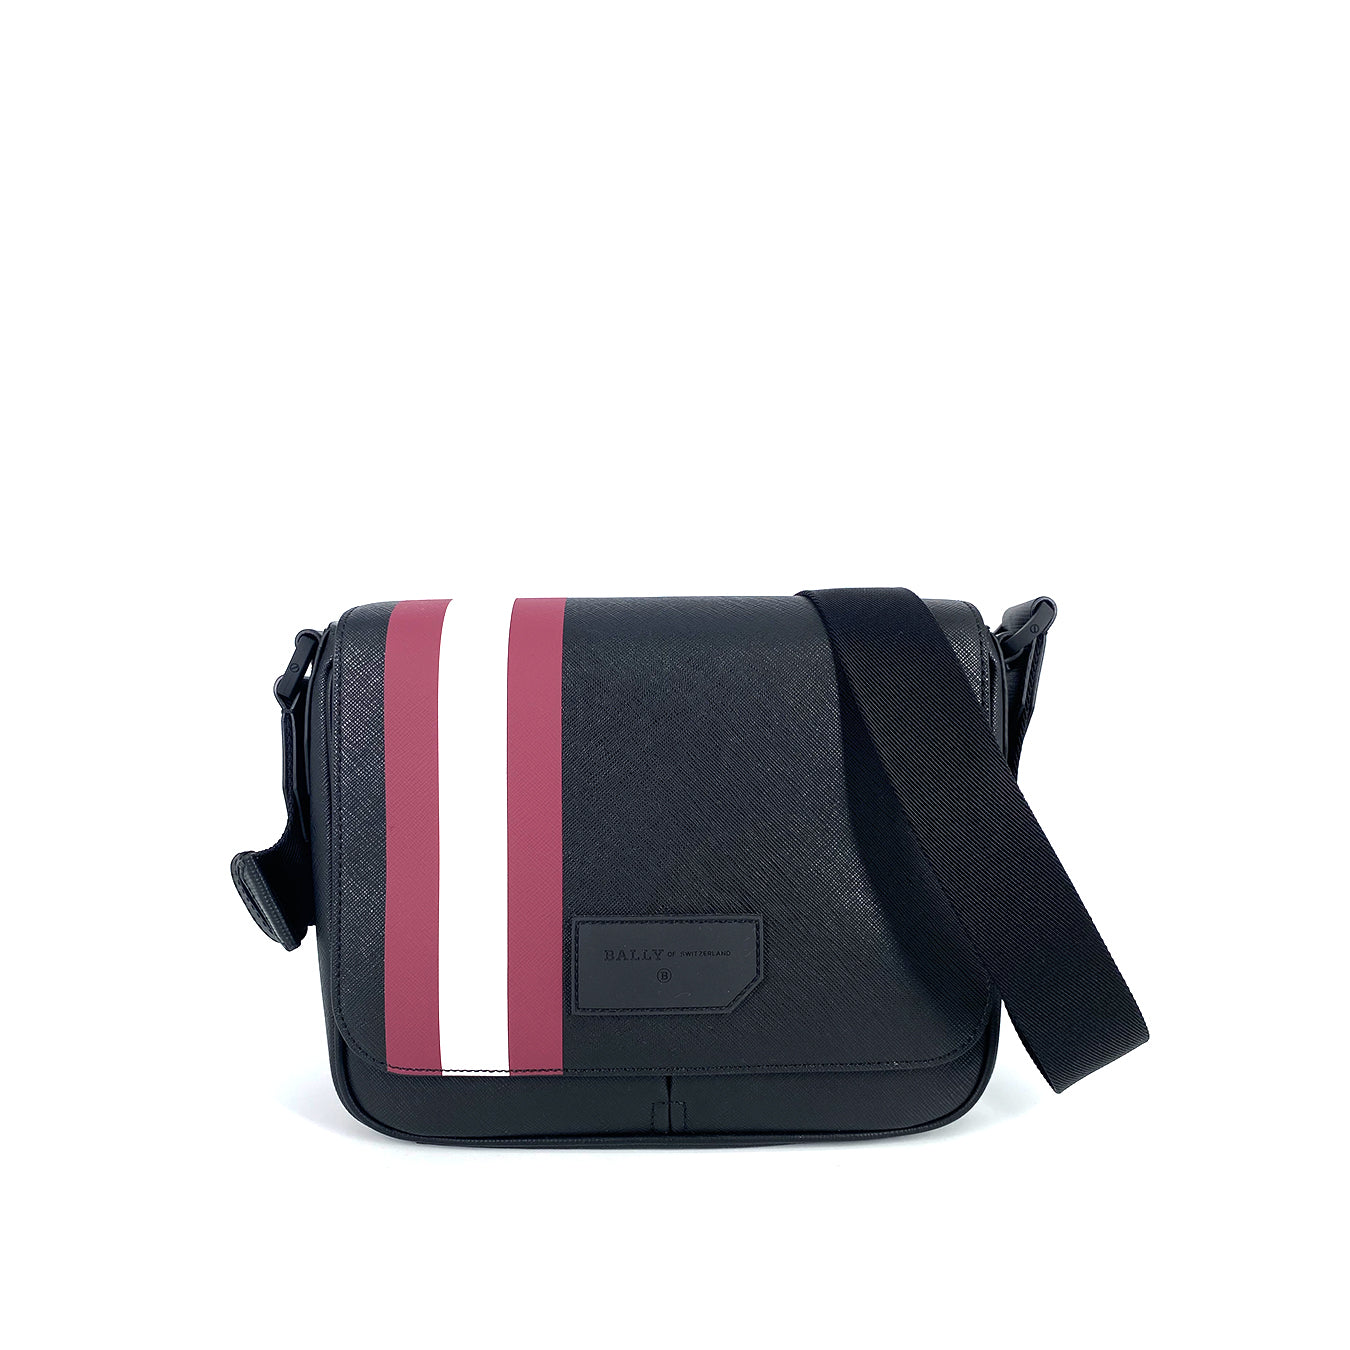 Bally Surier Coated Canvas Messenger Bag Black with Red Stripe